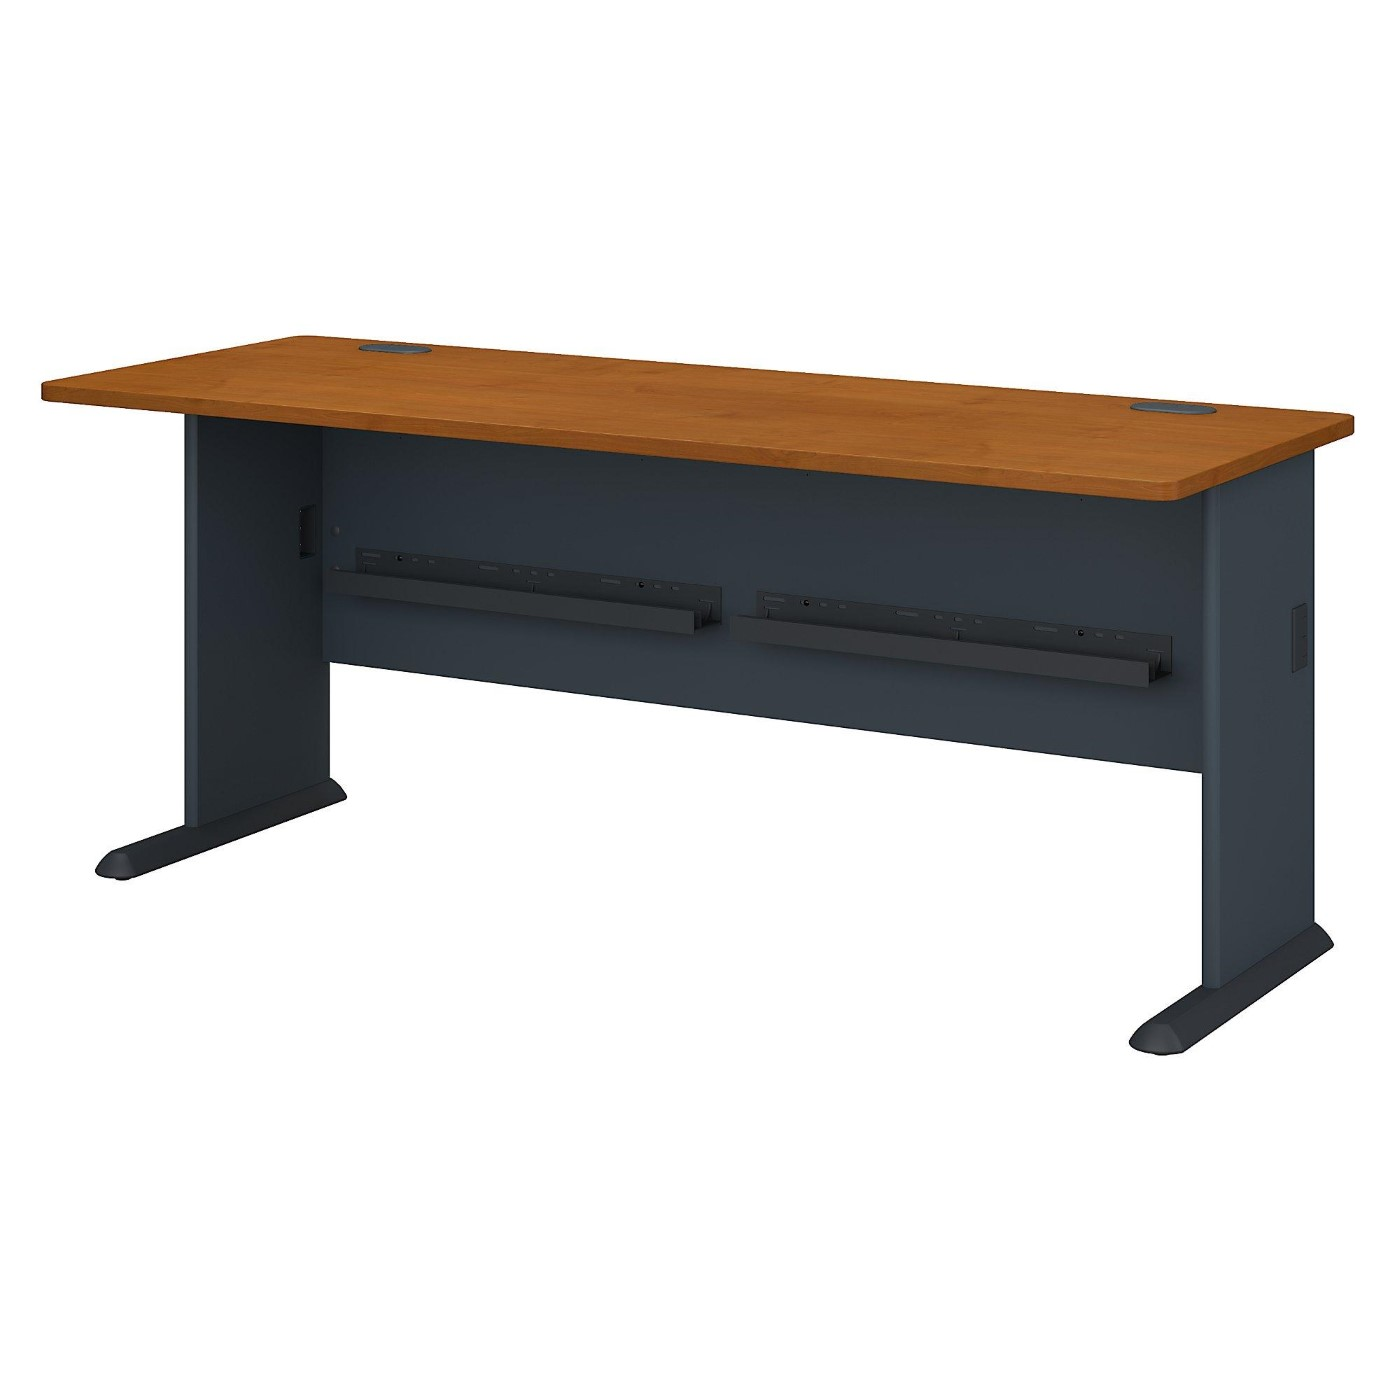 BUSH BUSINESS FURNITURE SERIES A 72W DESK. FREE SHIPPING.  SALE DEDUCT 10% MORE ENTER '10percent' IN COUPON CODE BOX WHILE CHECKING OUT.